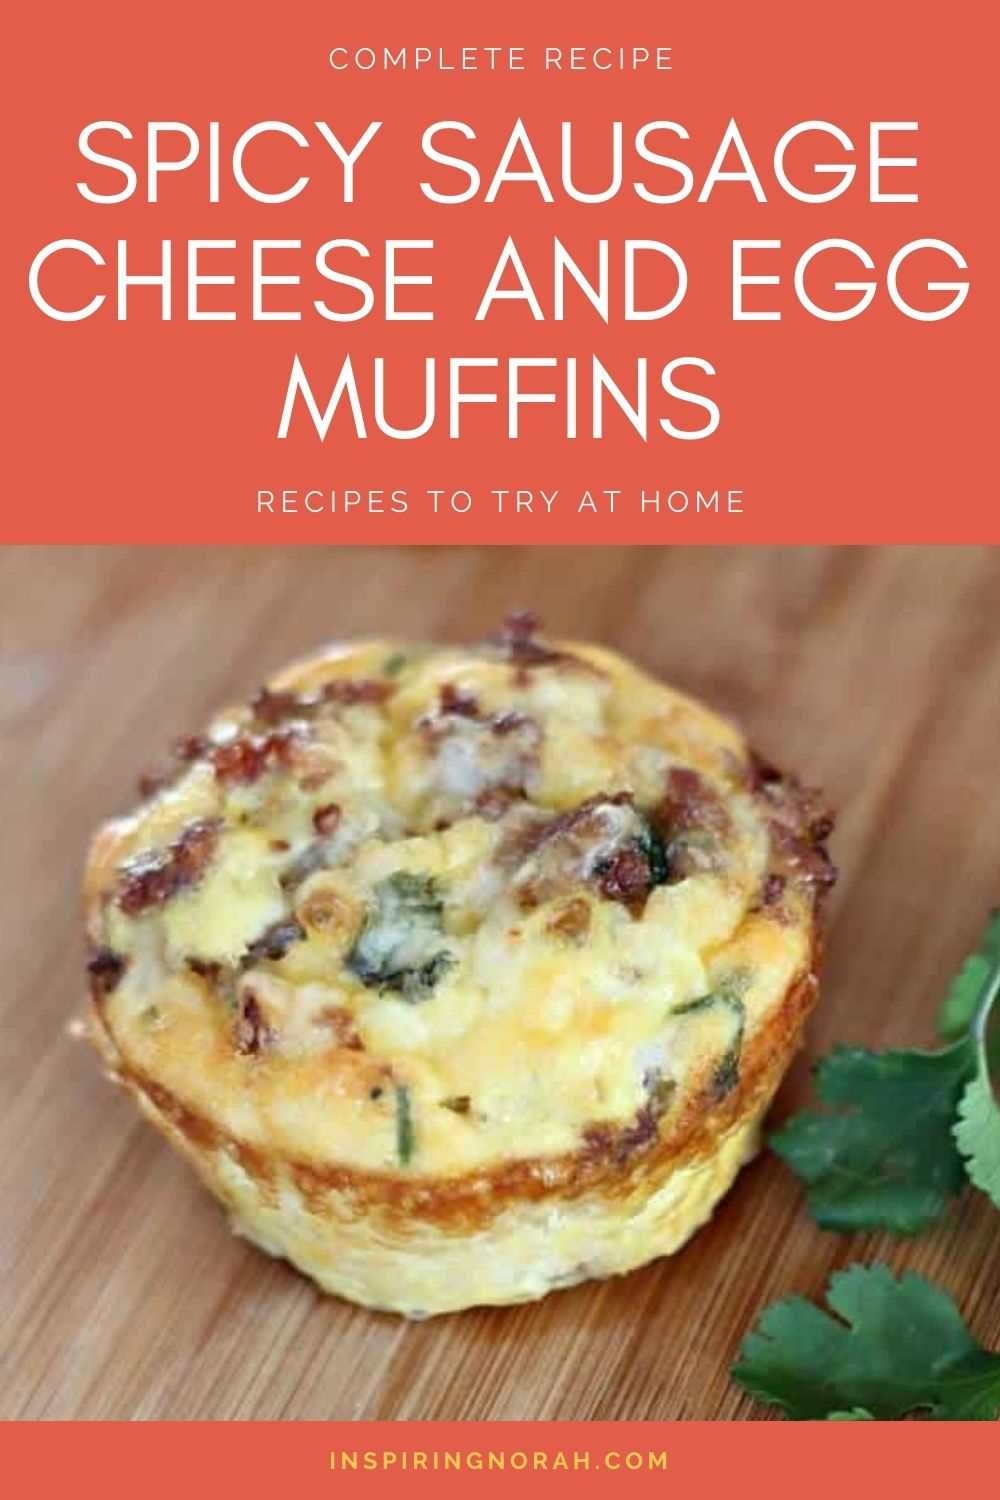 Spicy Sausage Cheese And Egg Muffins